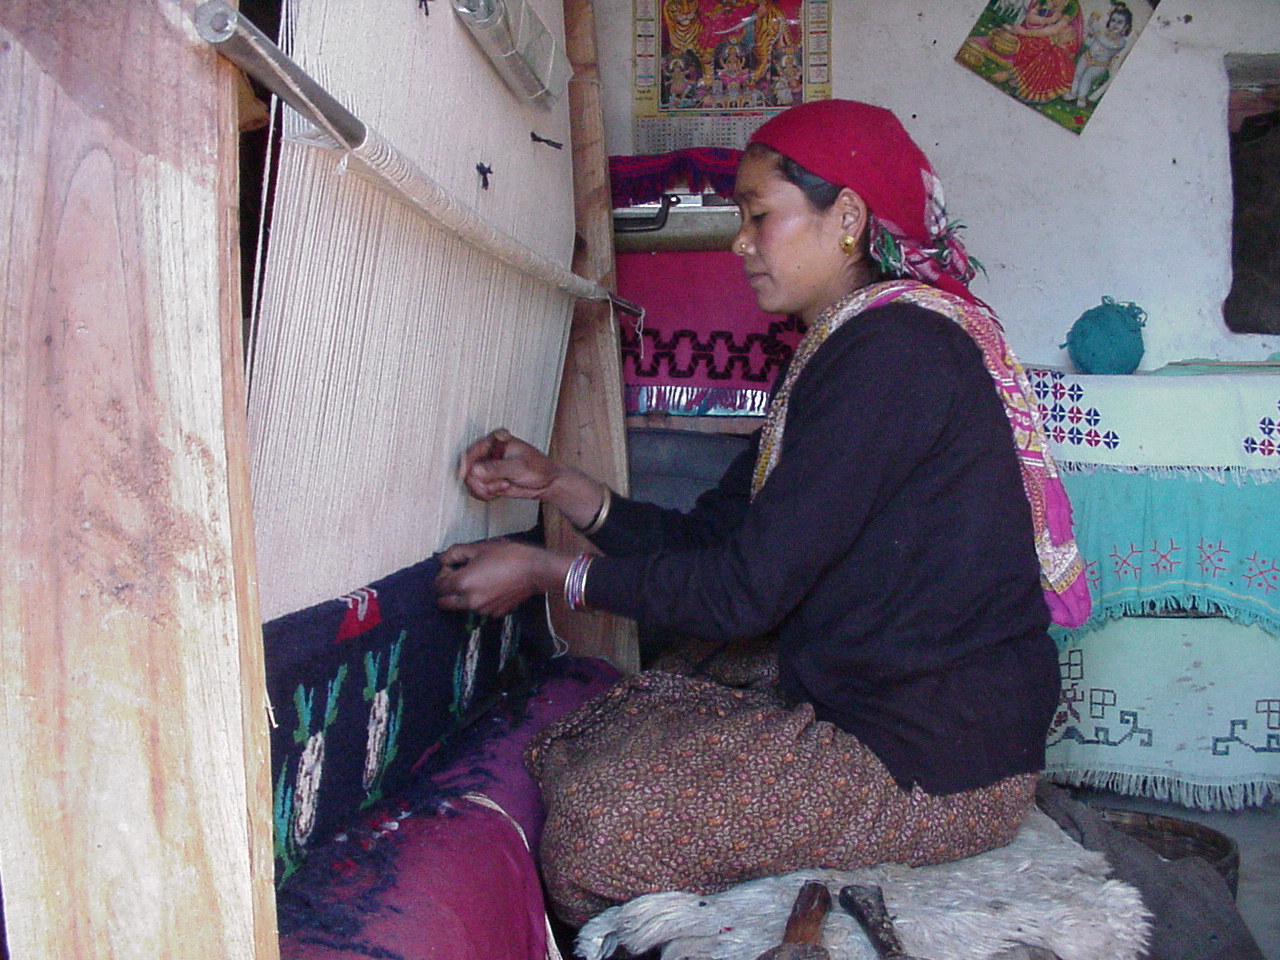 woman knotting carpet